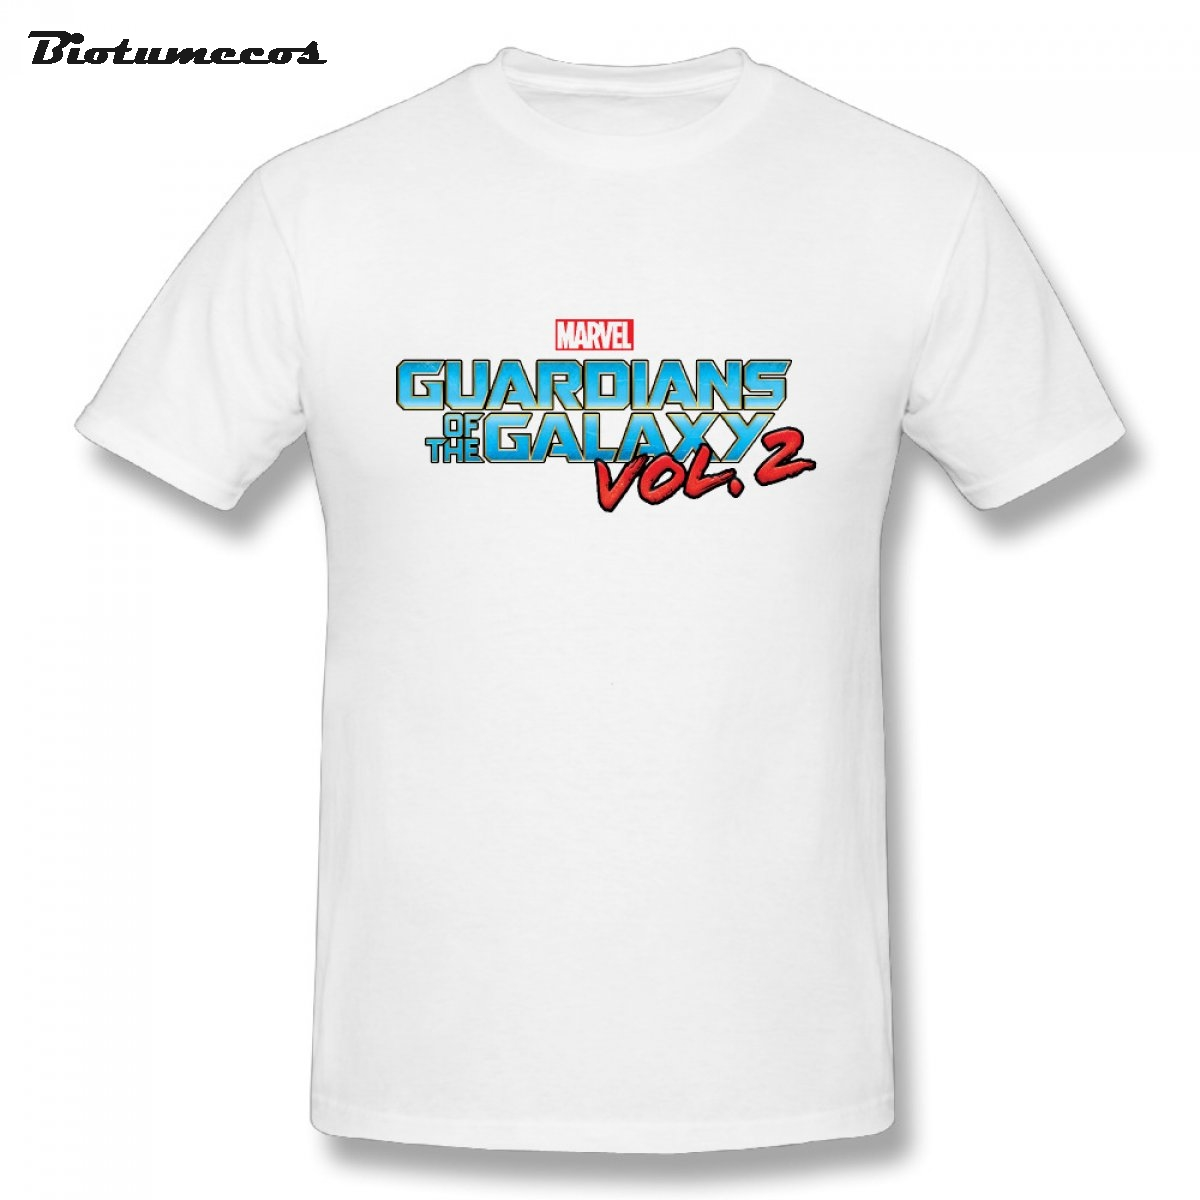 Mens O-Neck T-shirt Fashion Short Sleeve Summer Casual Tee Guardians of the Galaxy Printed Cotton Personalized T shirts MTYS019